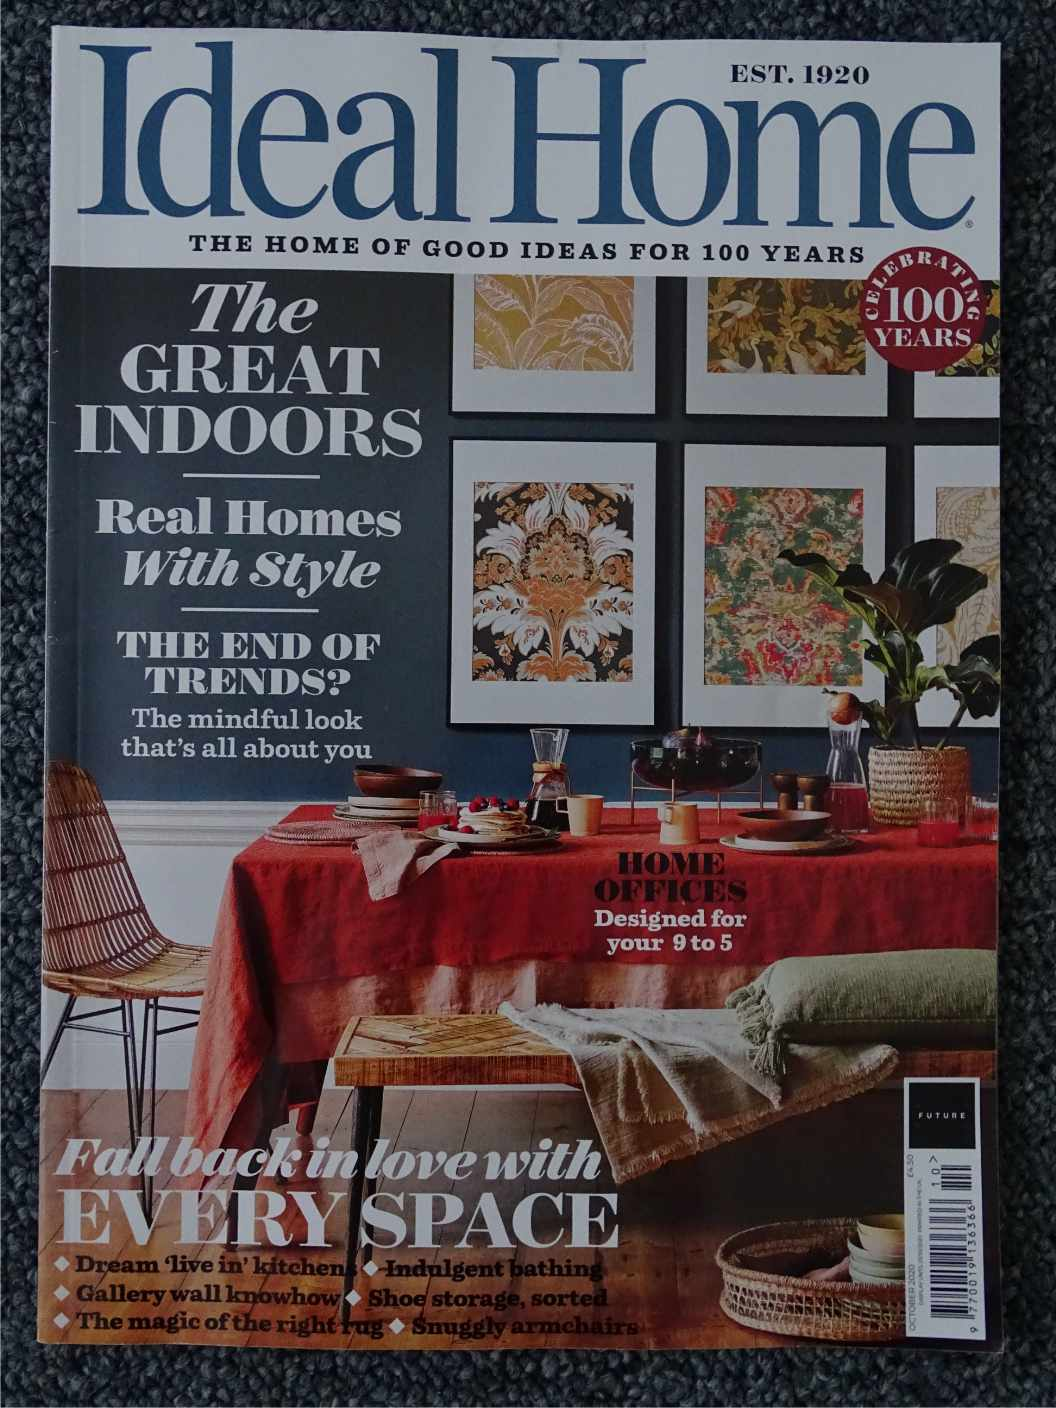 Ideal Home magazine October 2020